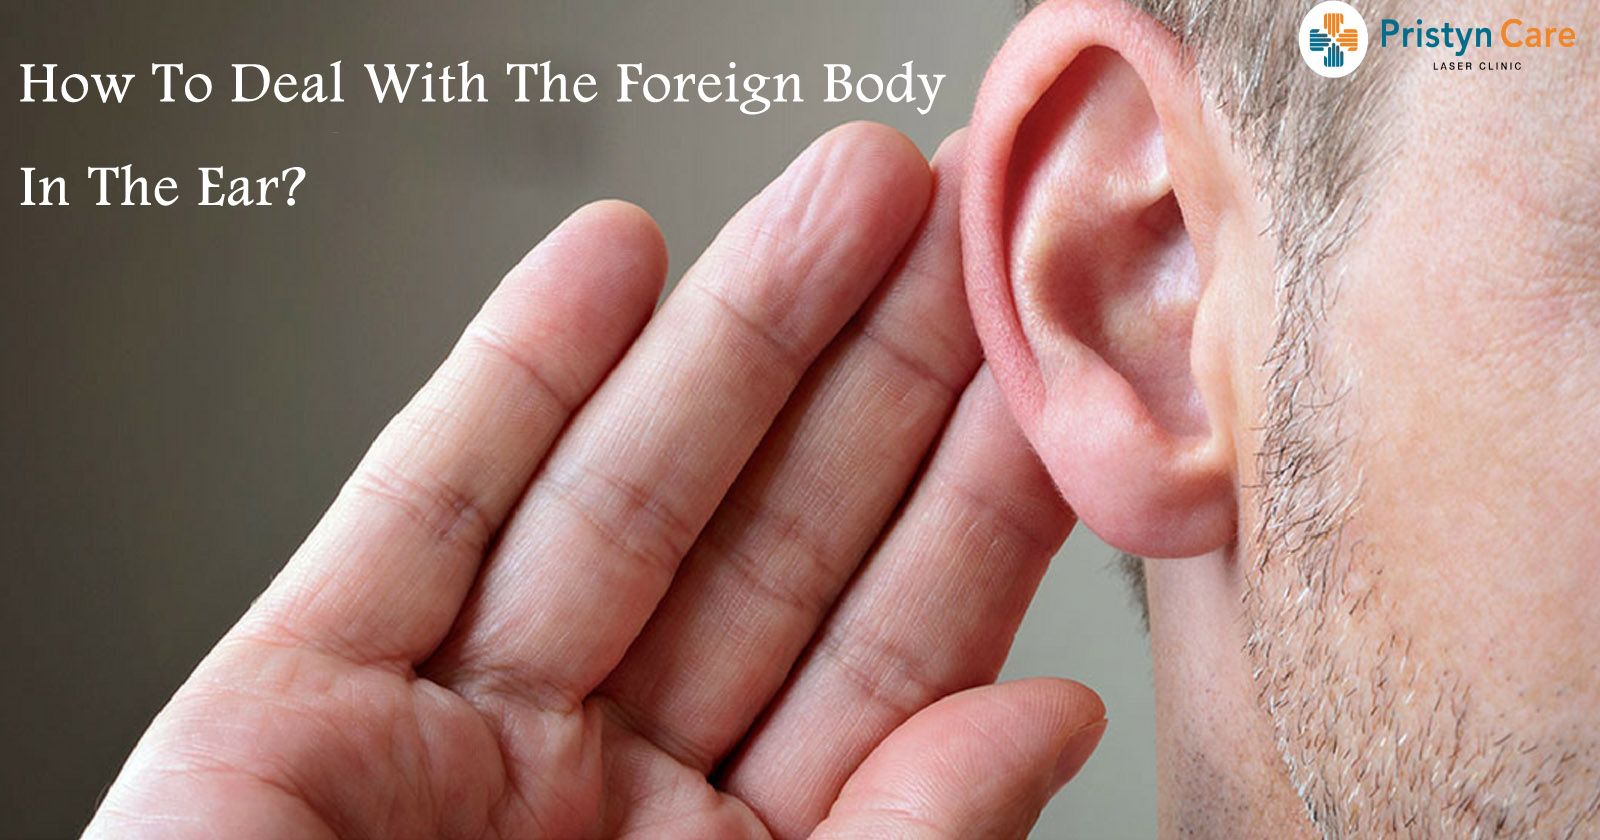 How to deal with the Foreign Body in the ear?